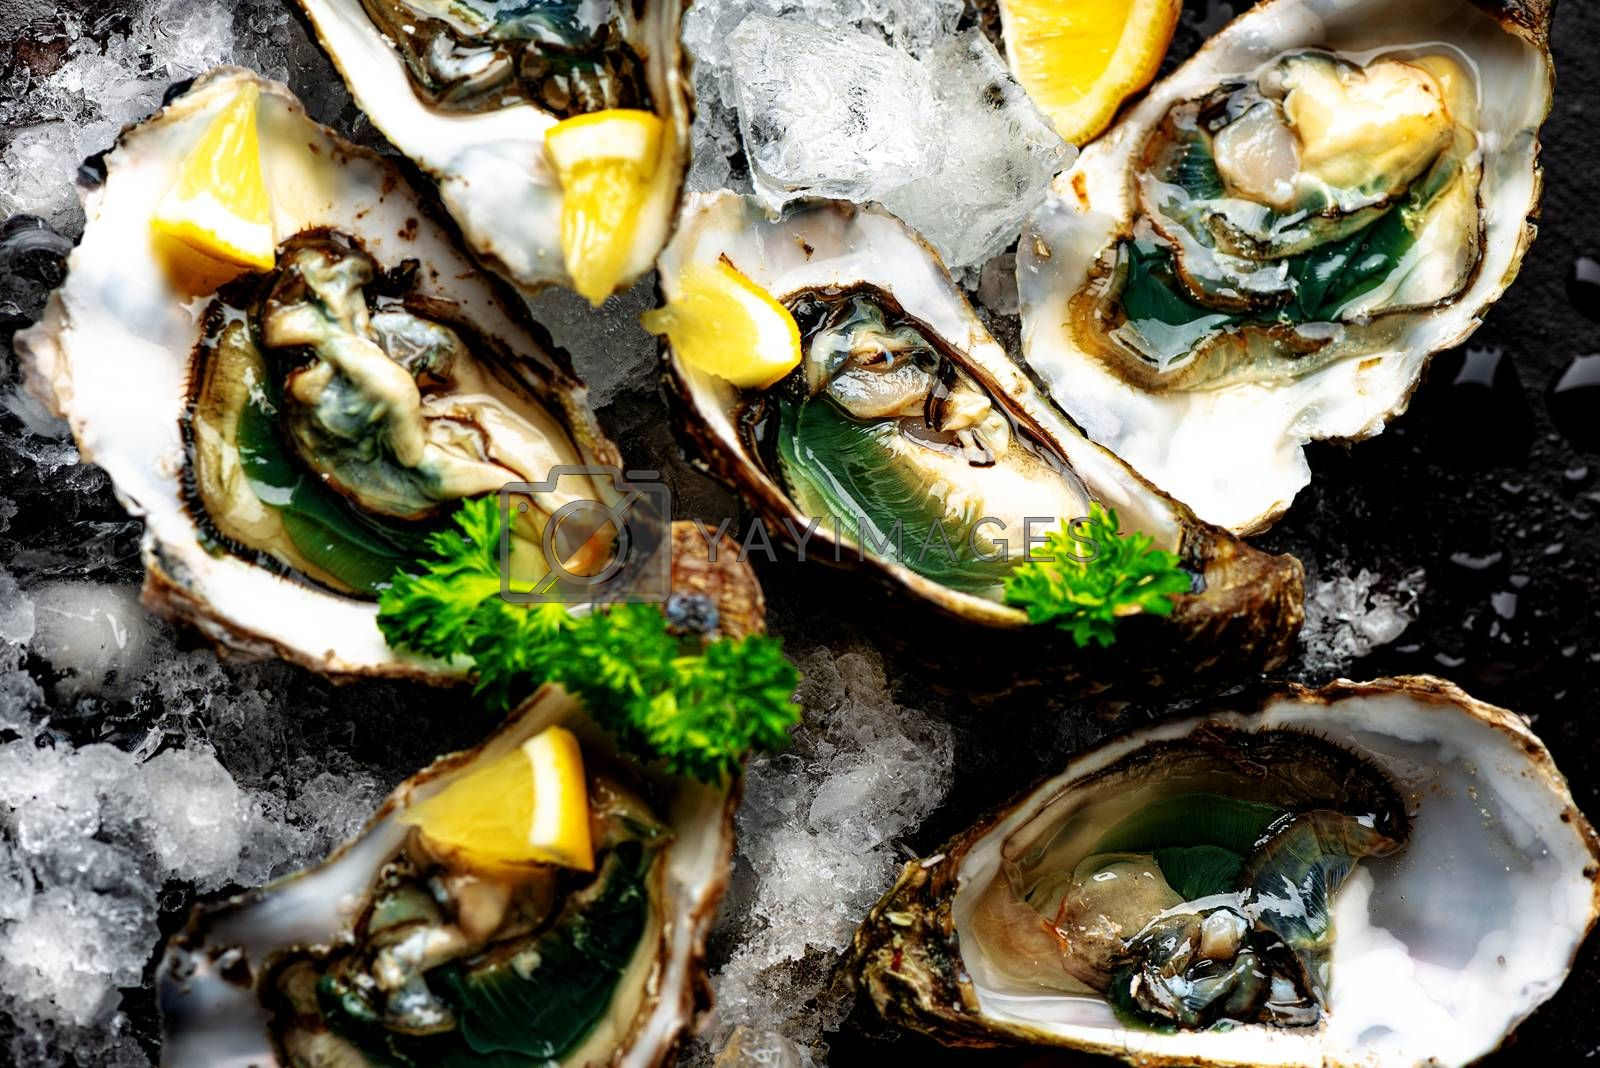 Raw opened oysters on crushed ice with lemon and parsley